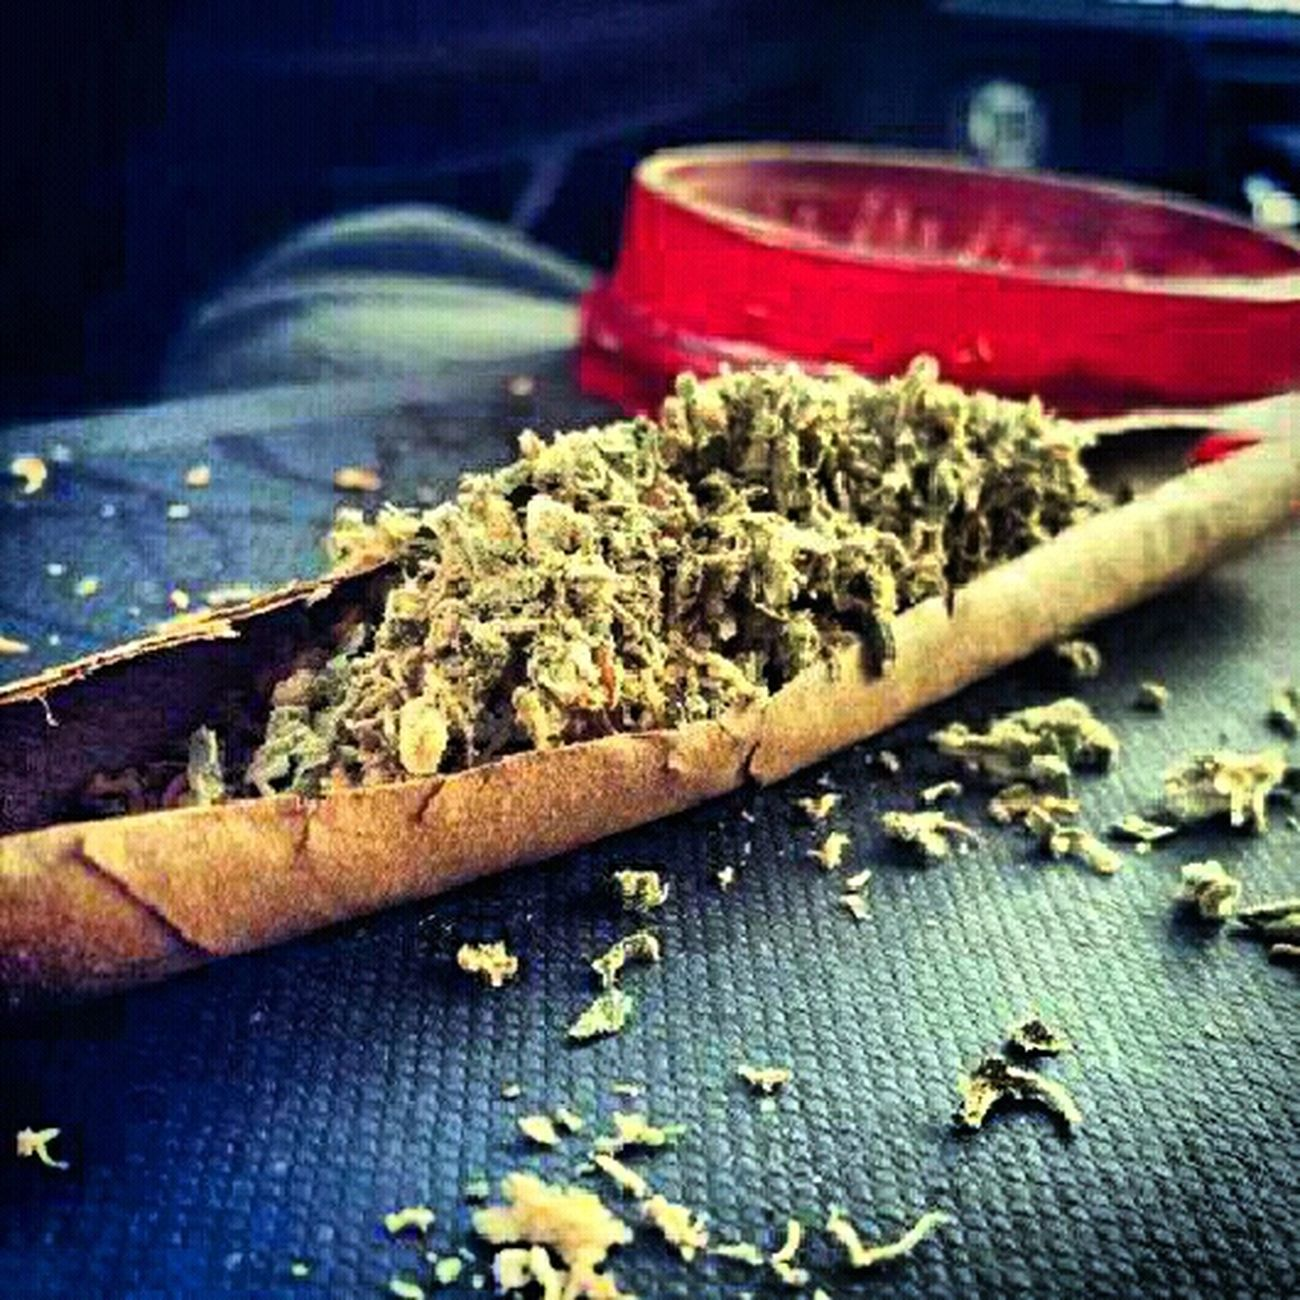 my type of blunts ;) Phat Ganja Dumb Fat Thuggin Weed